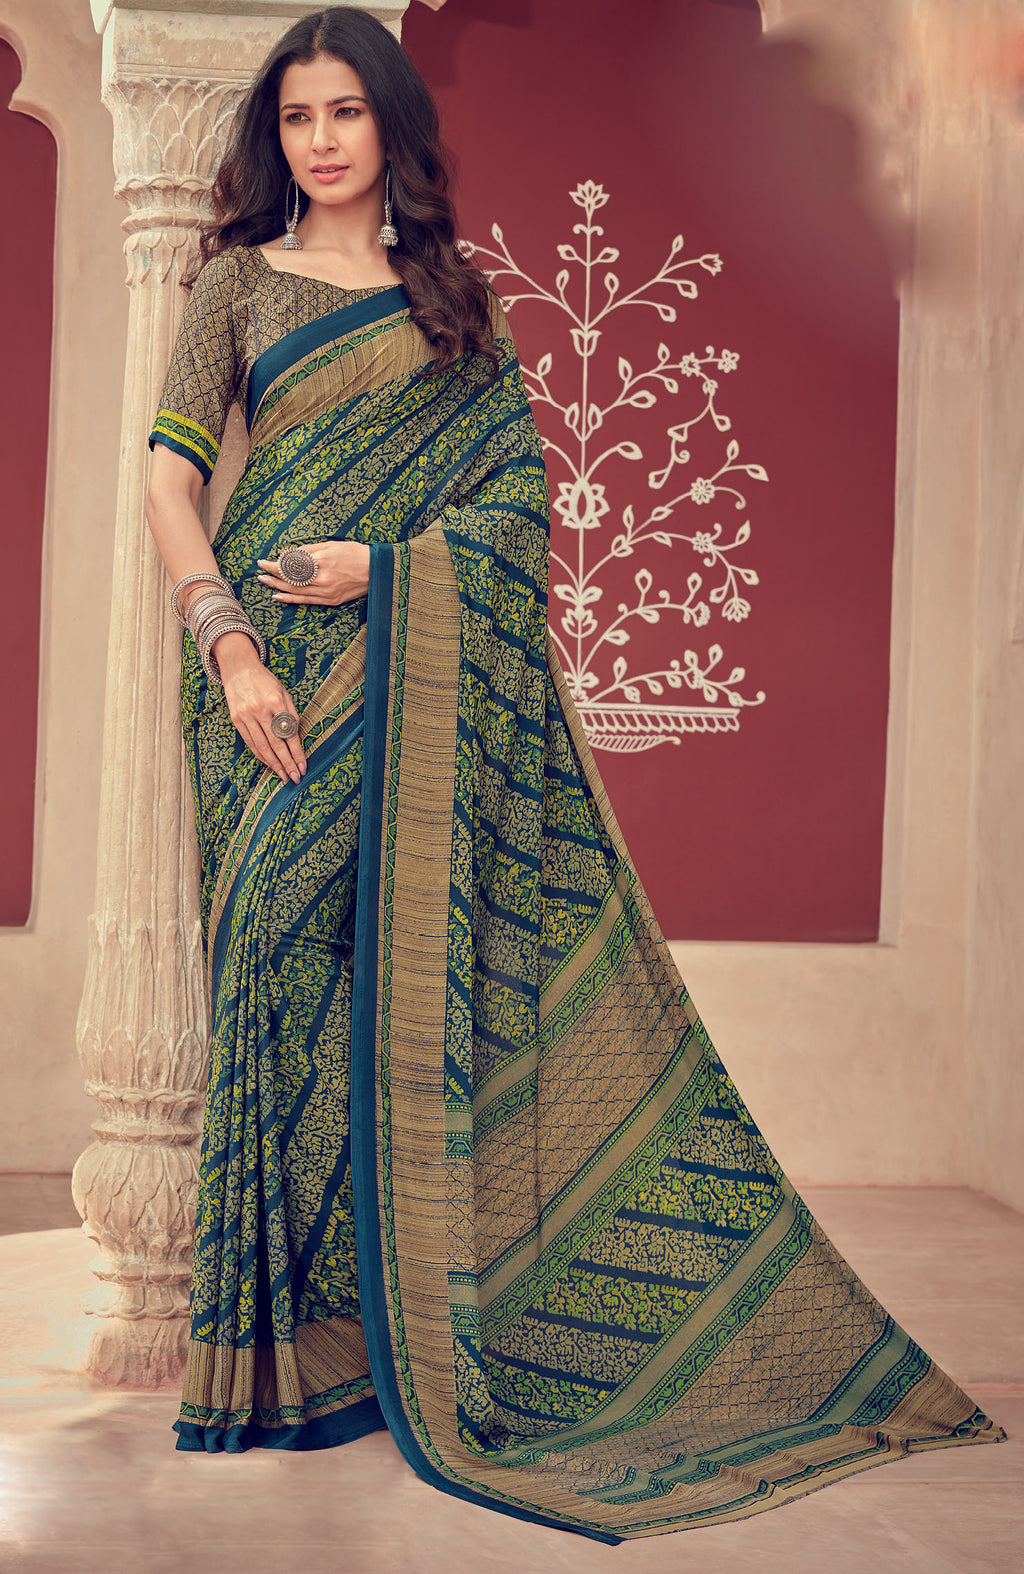 Green & Blue Color Crepe Silk Kitty Party Sarees NYF-8481